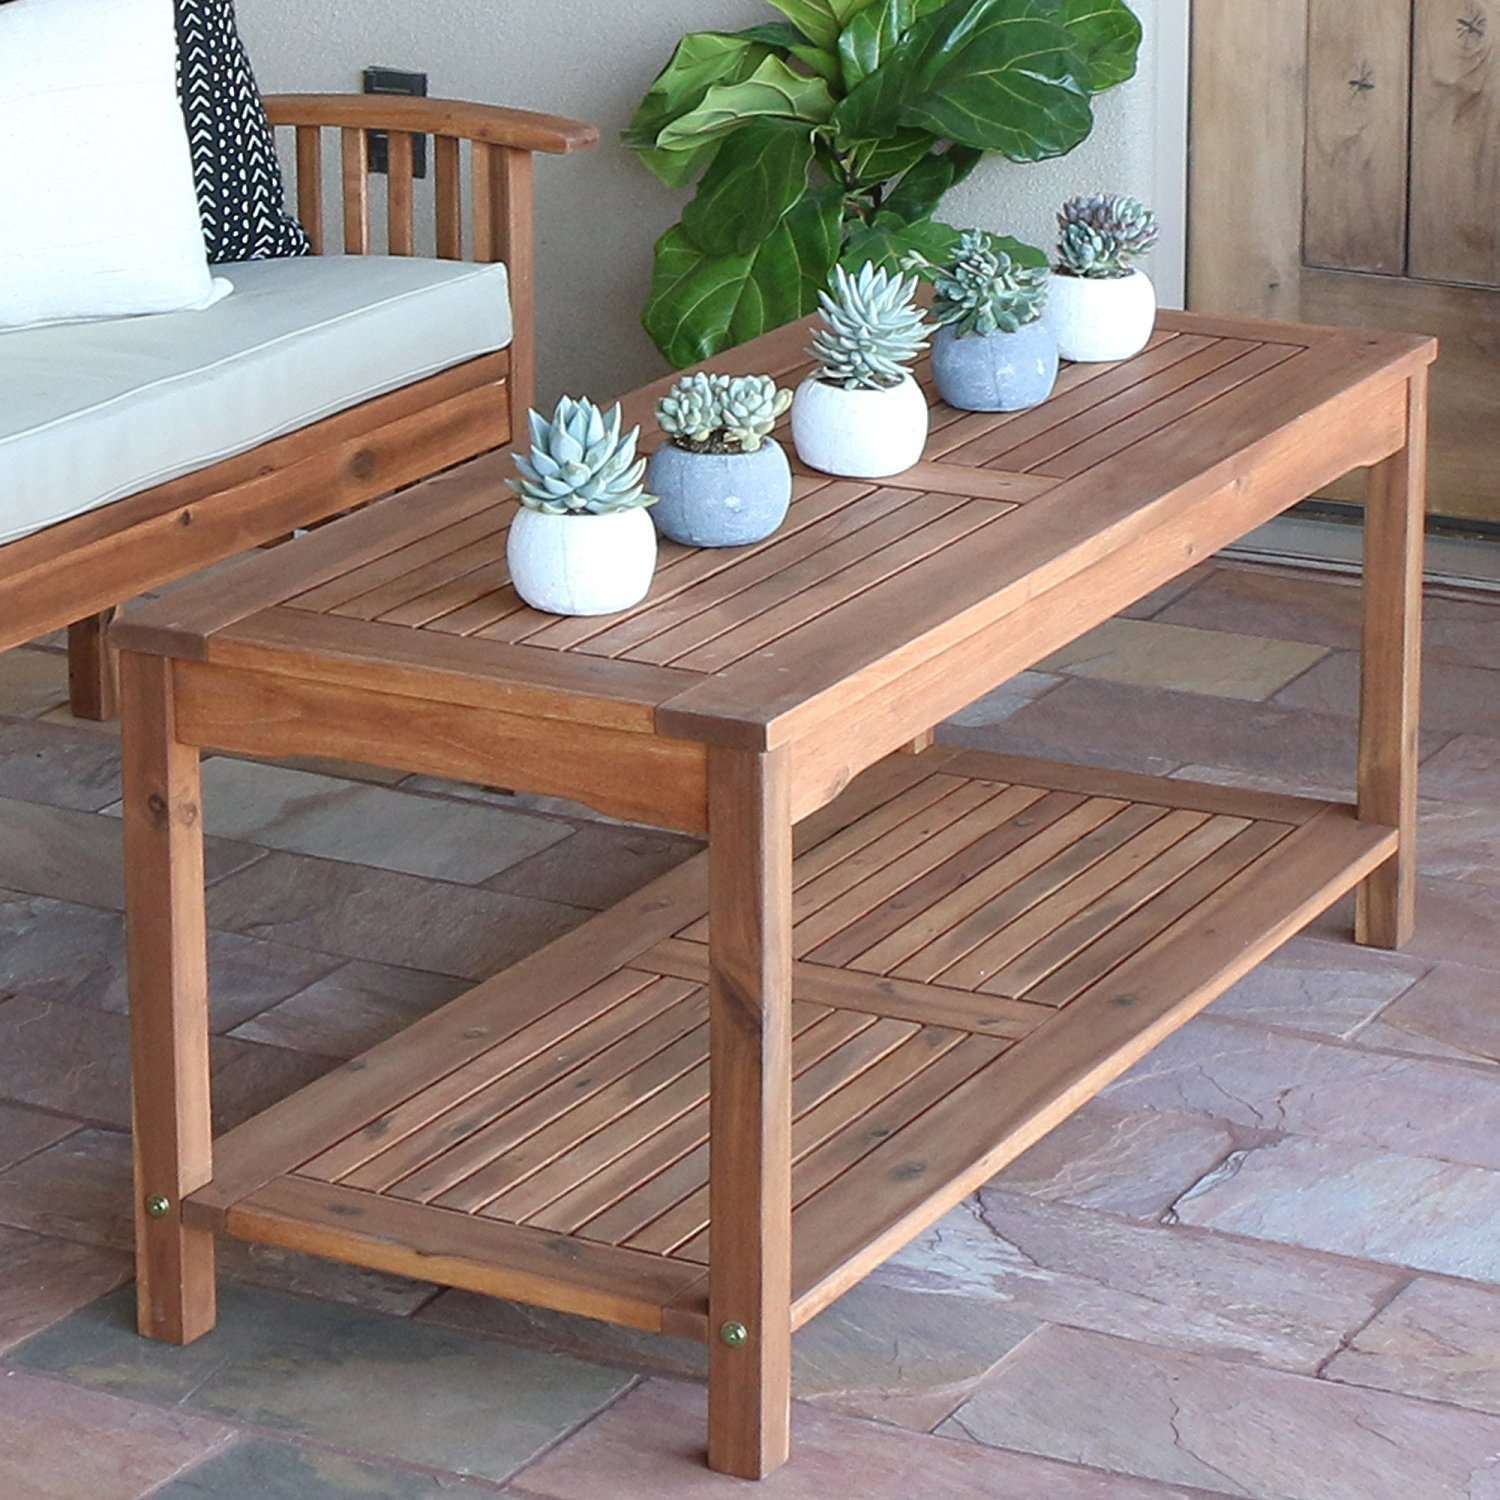 10 Patio Coffee Table With Umbrella Hole Ideas Coffee Table Wood